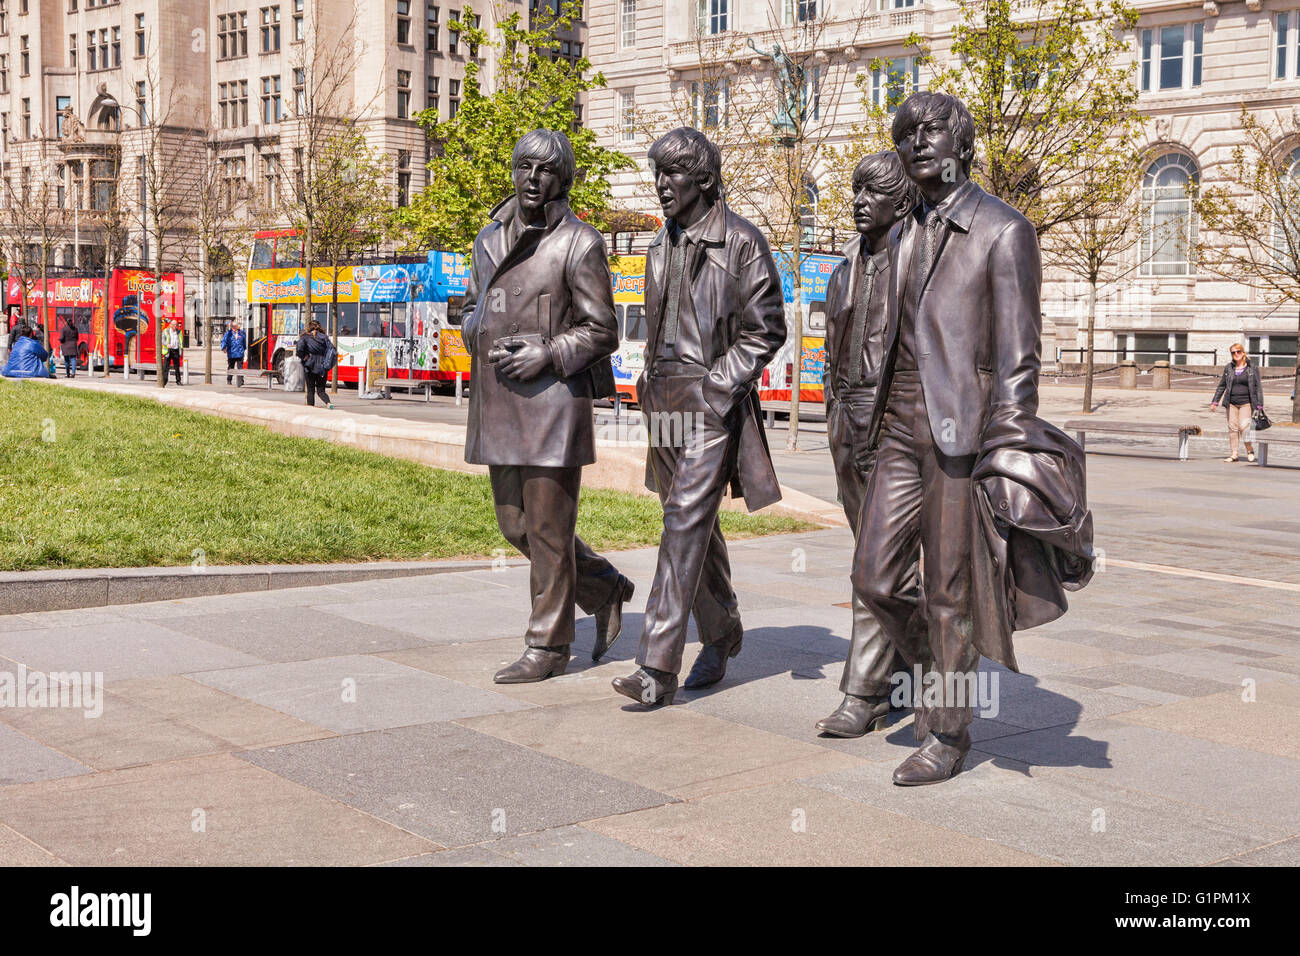 Beatles statues, by sculptor Andrew Edwards, on the Liverpool waterfront, England, UK - Stock Image